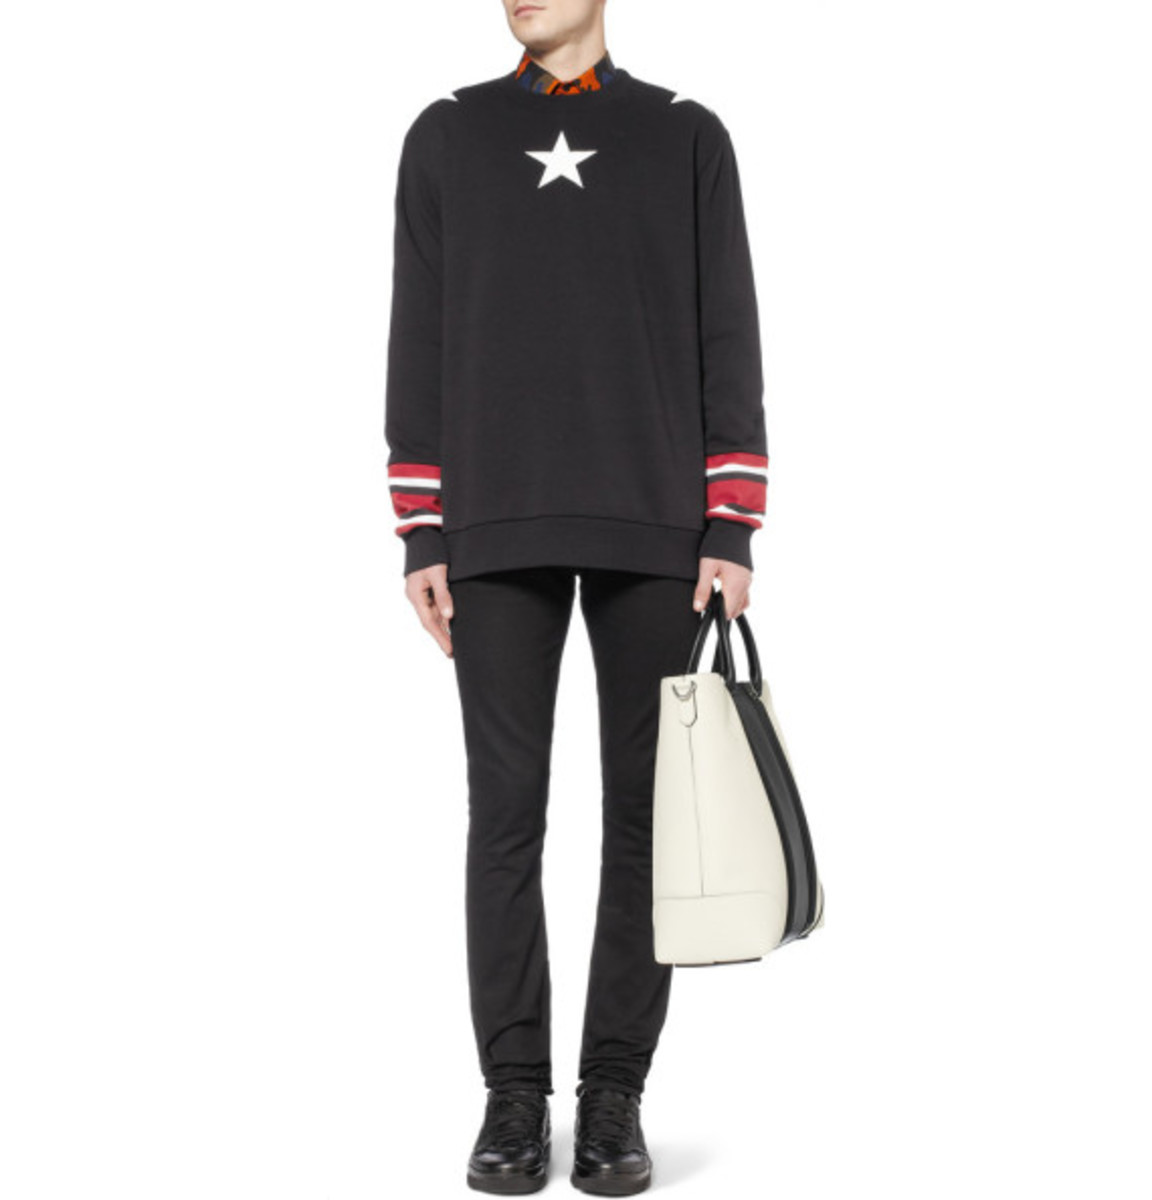 givenchy-star-printed-striped-cotton-sweatshirt-07